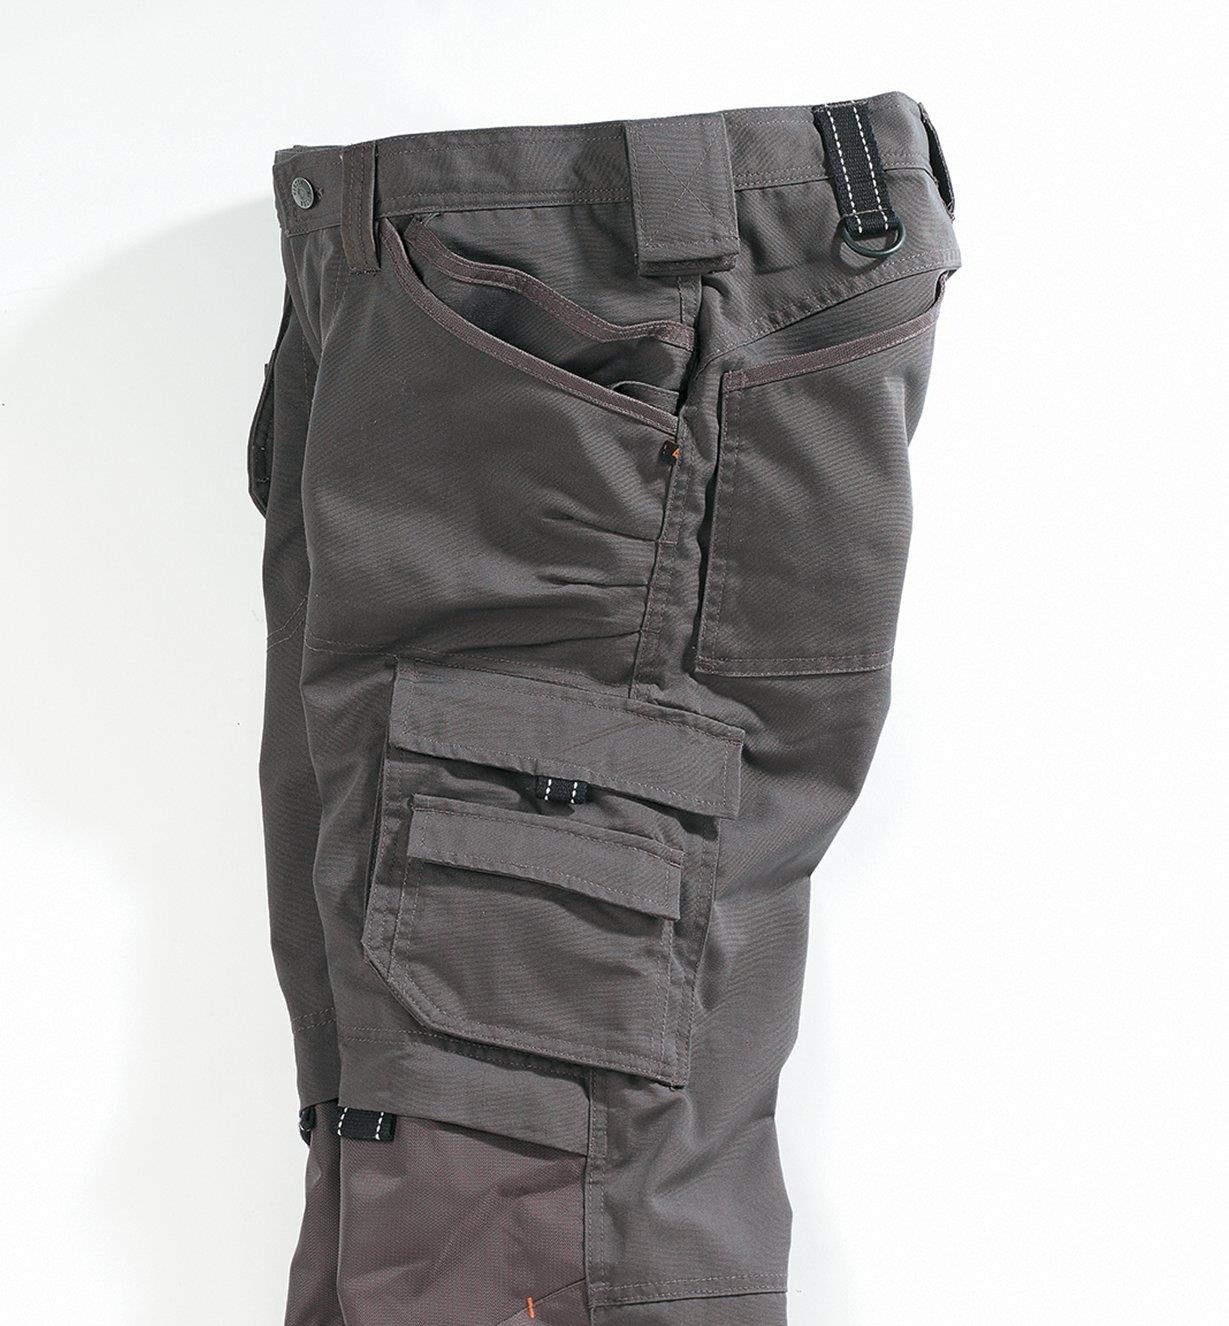 Side view of leg pockets